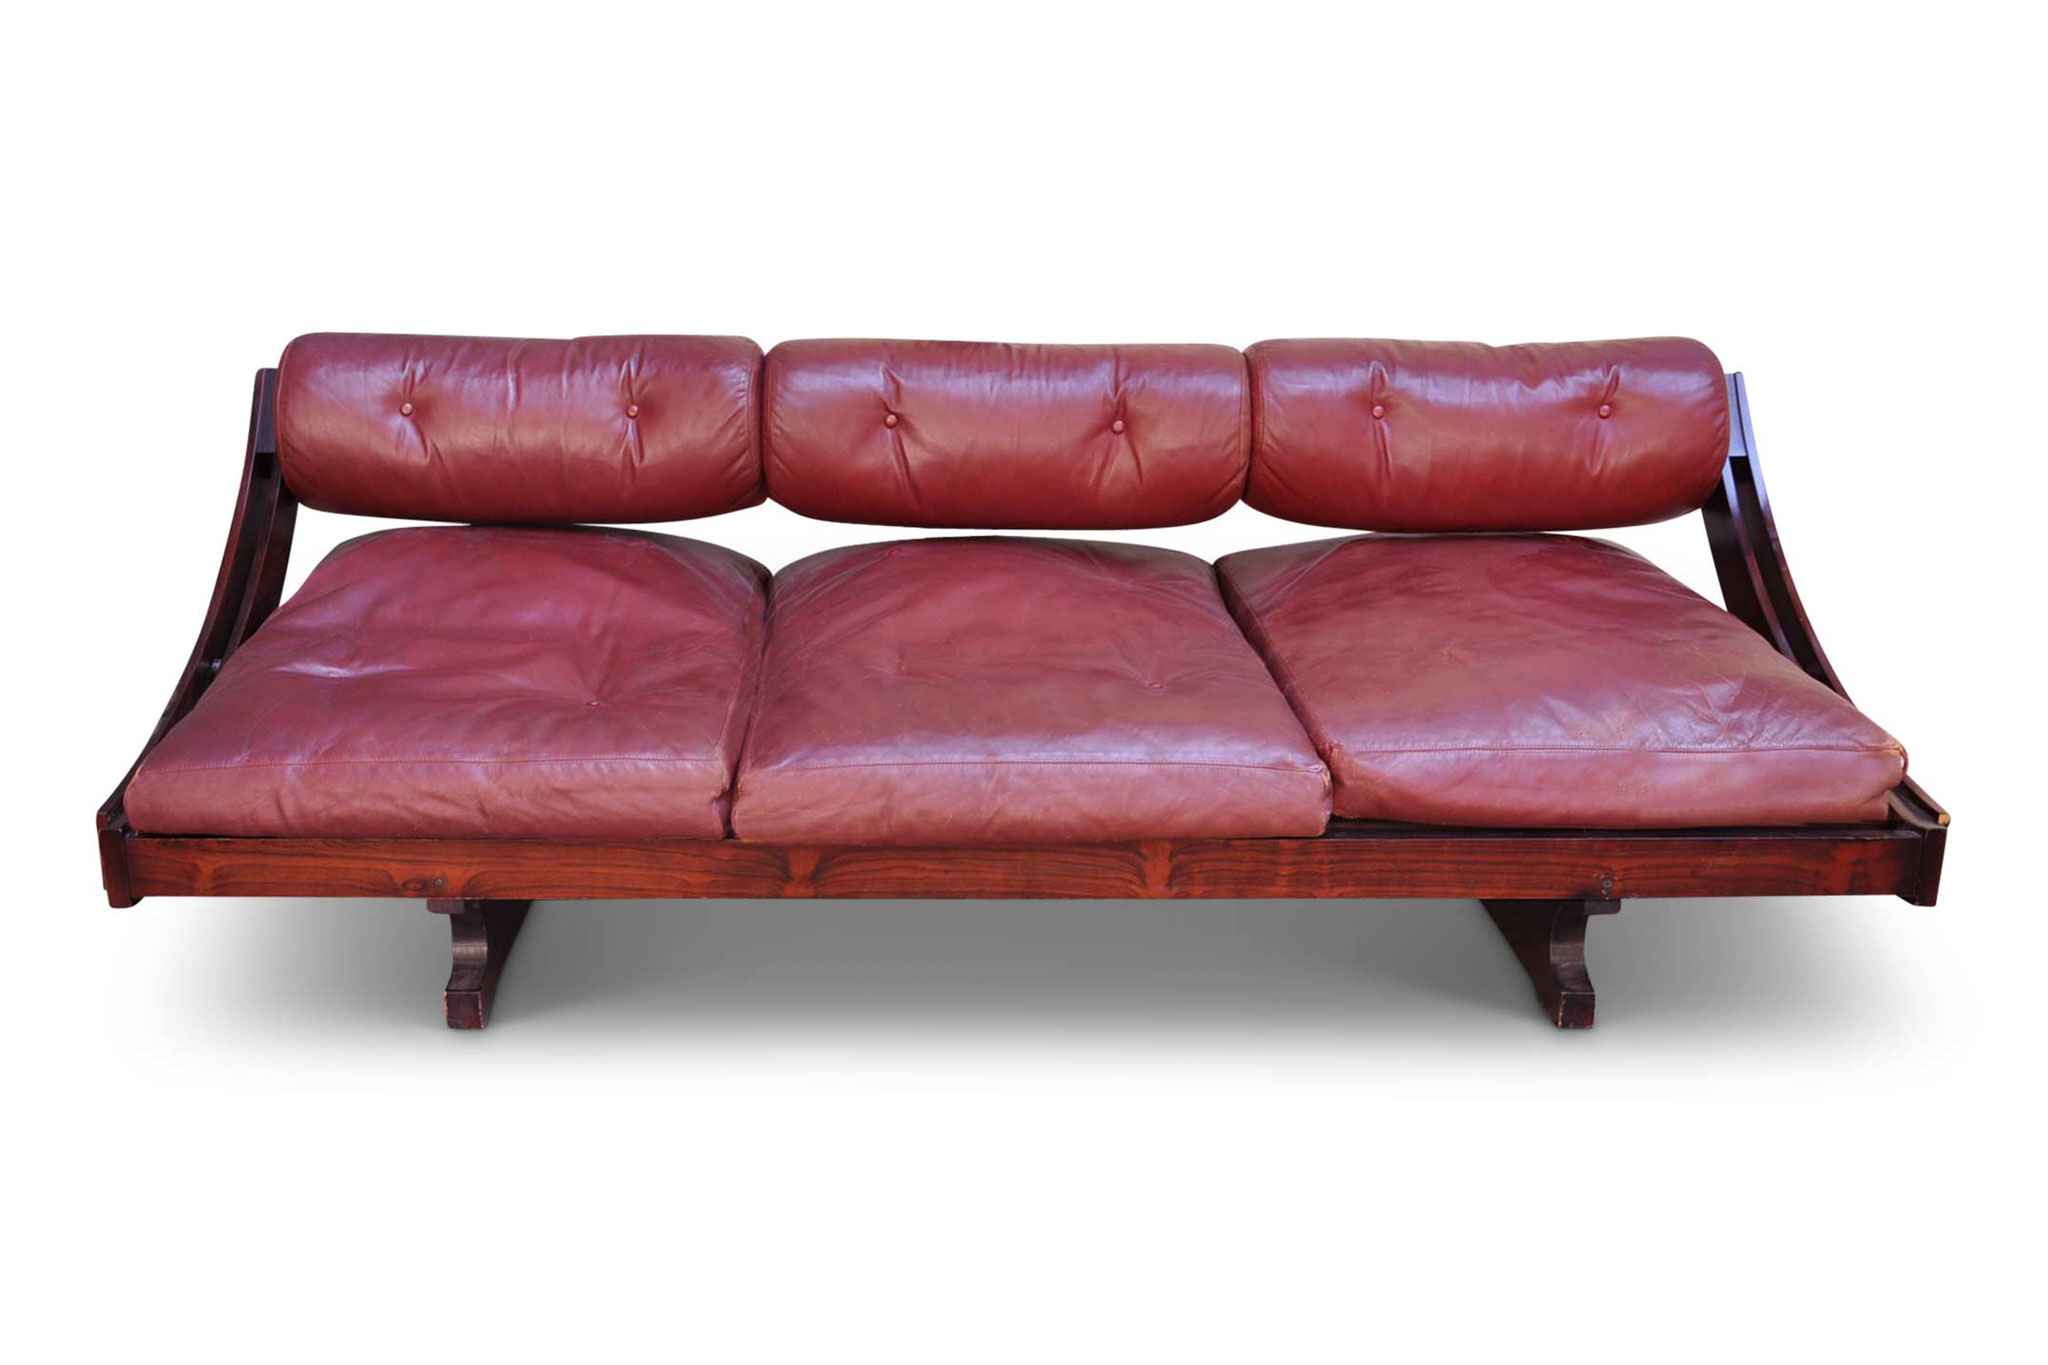 Sofa daybed GS195 Gianni Songia per Sormani 1963